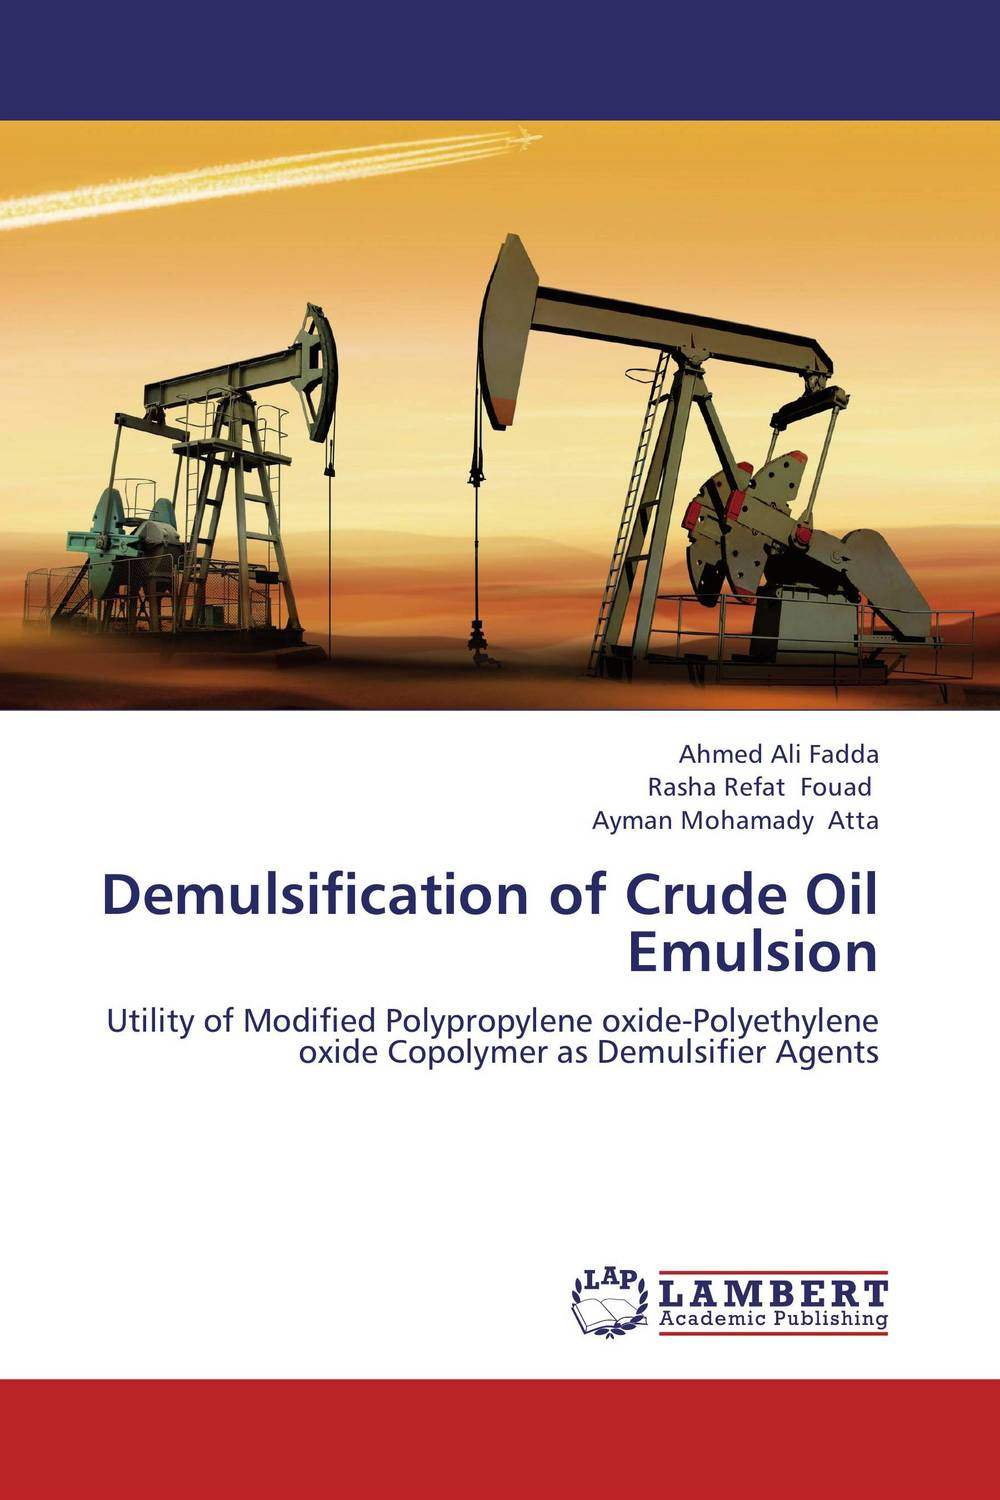 Demulsification of Crude Oil Emulsion dearomatization of crude oil